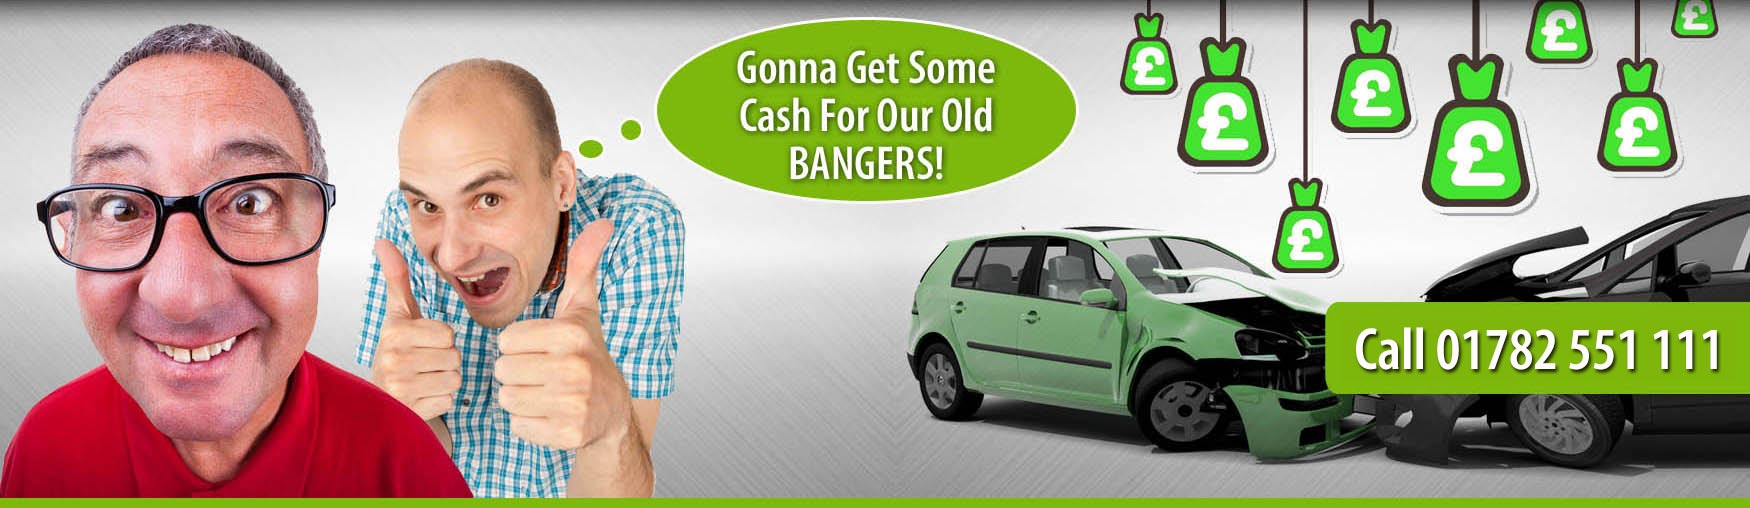 Get Some Cash For Your Scrap Cars In Stoke-on-Trent Staffordshire